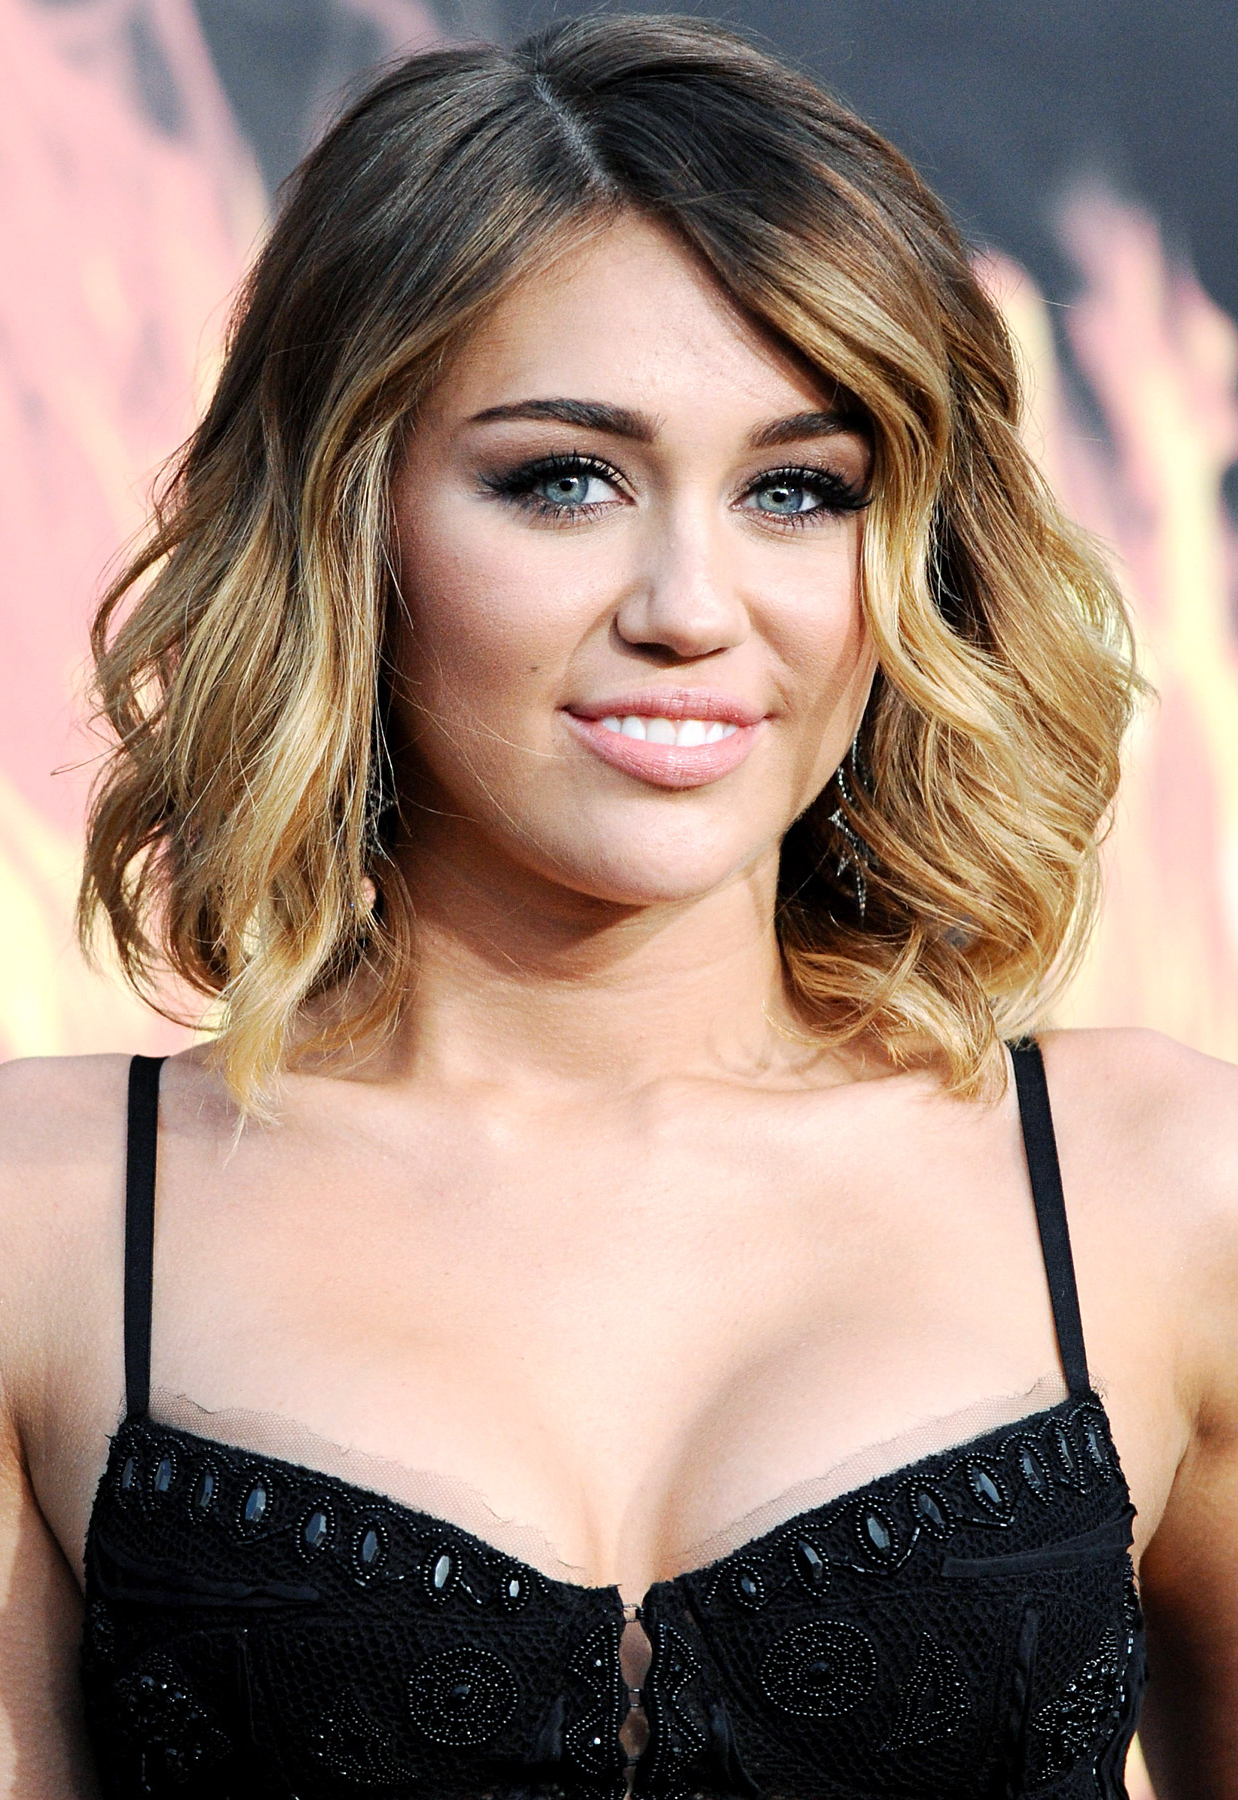 2015 Miley Cyrus Hairstyles Hairstyle 2015 Regarding Current Miley Cyrus Medium Hairstyles (View 1 of 20)